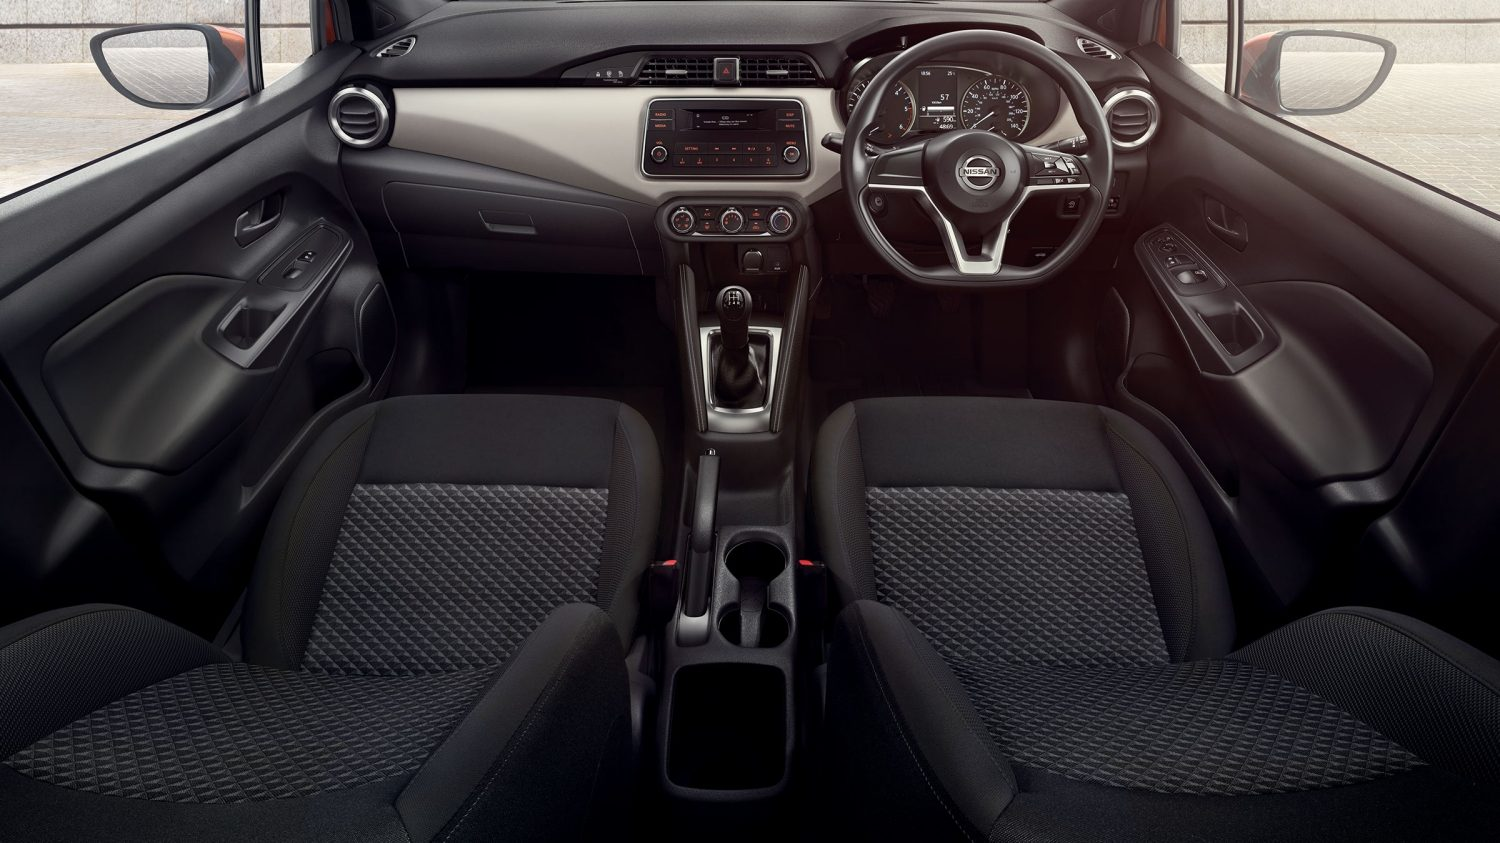 Nissan Micra Black Cloth Interior